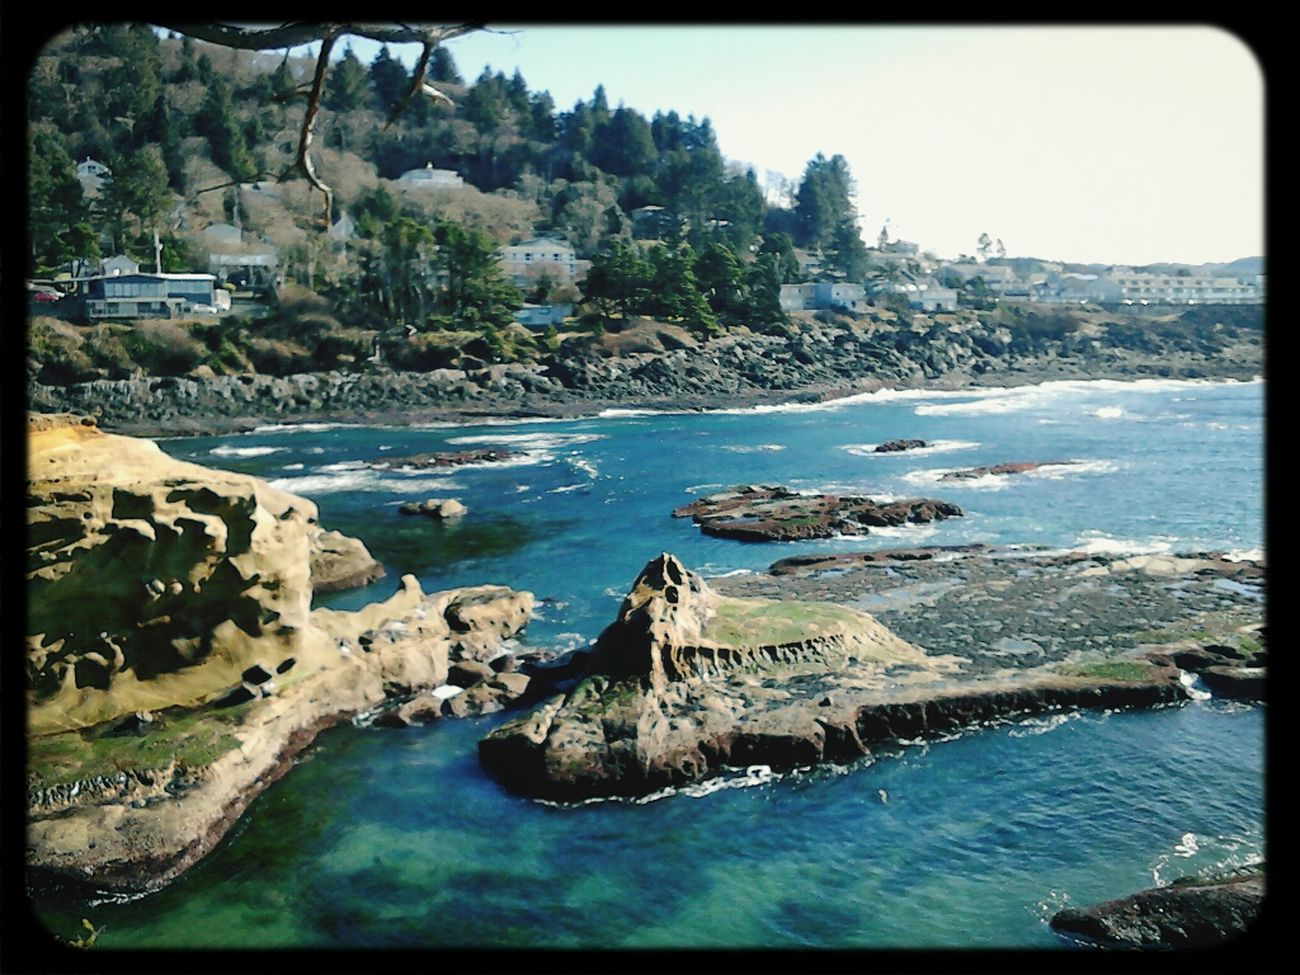 the view of the cove in Depoe Bay